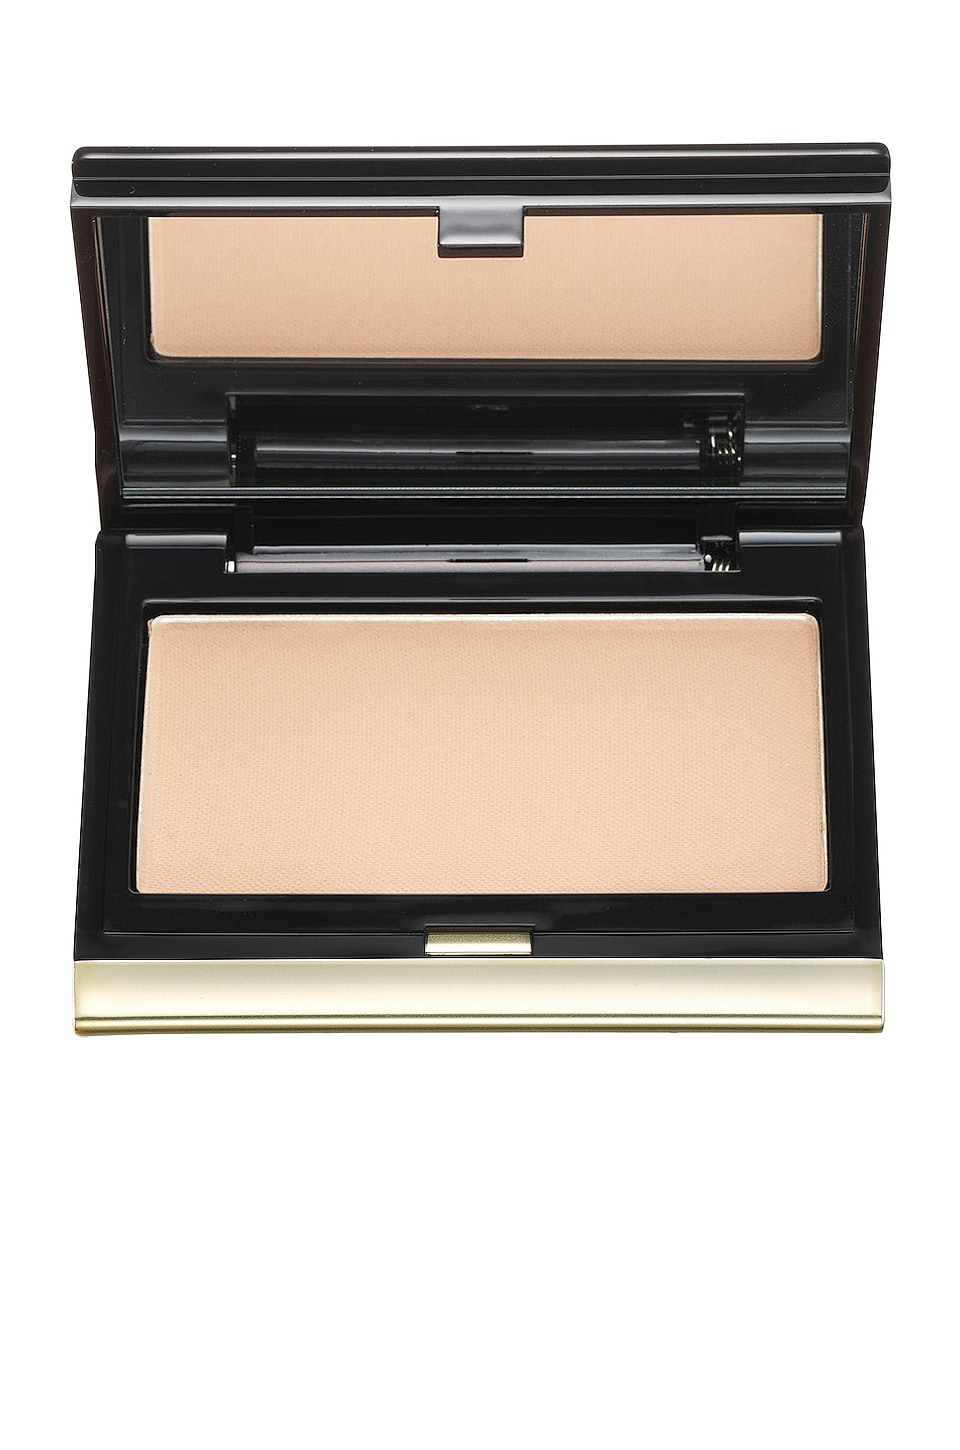 Kevyn Aucoin The Sculpting Powder in Light